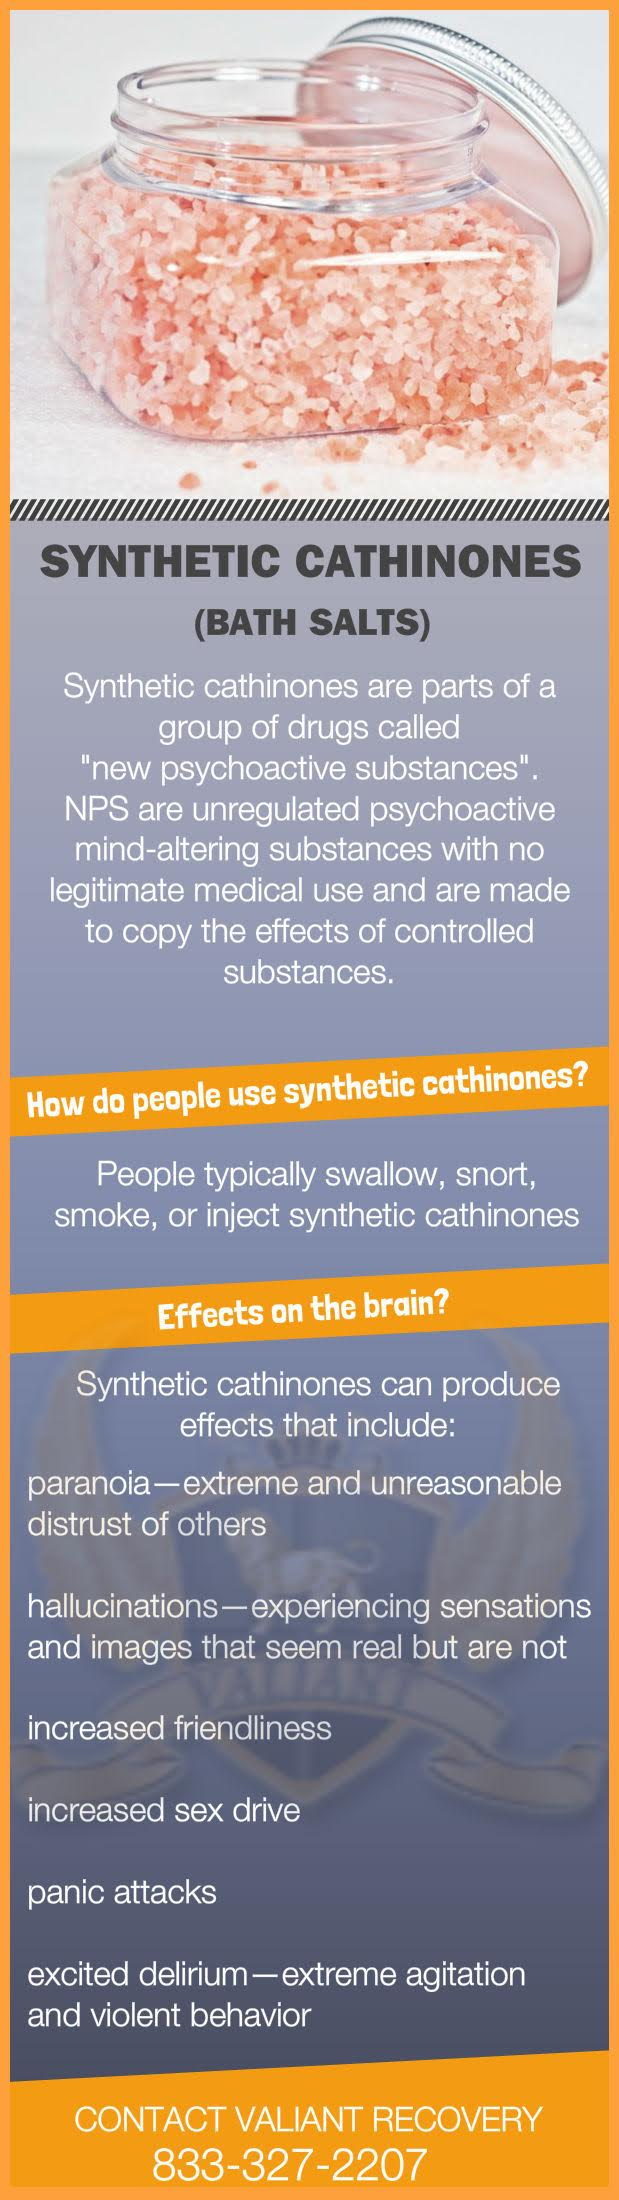 "What are Bath Salts ""Synthetic Cathinones"" - Infographic"